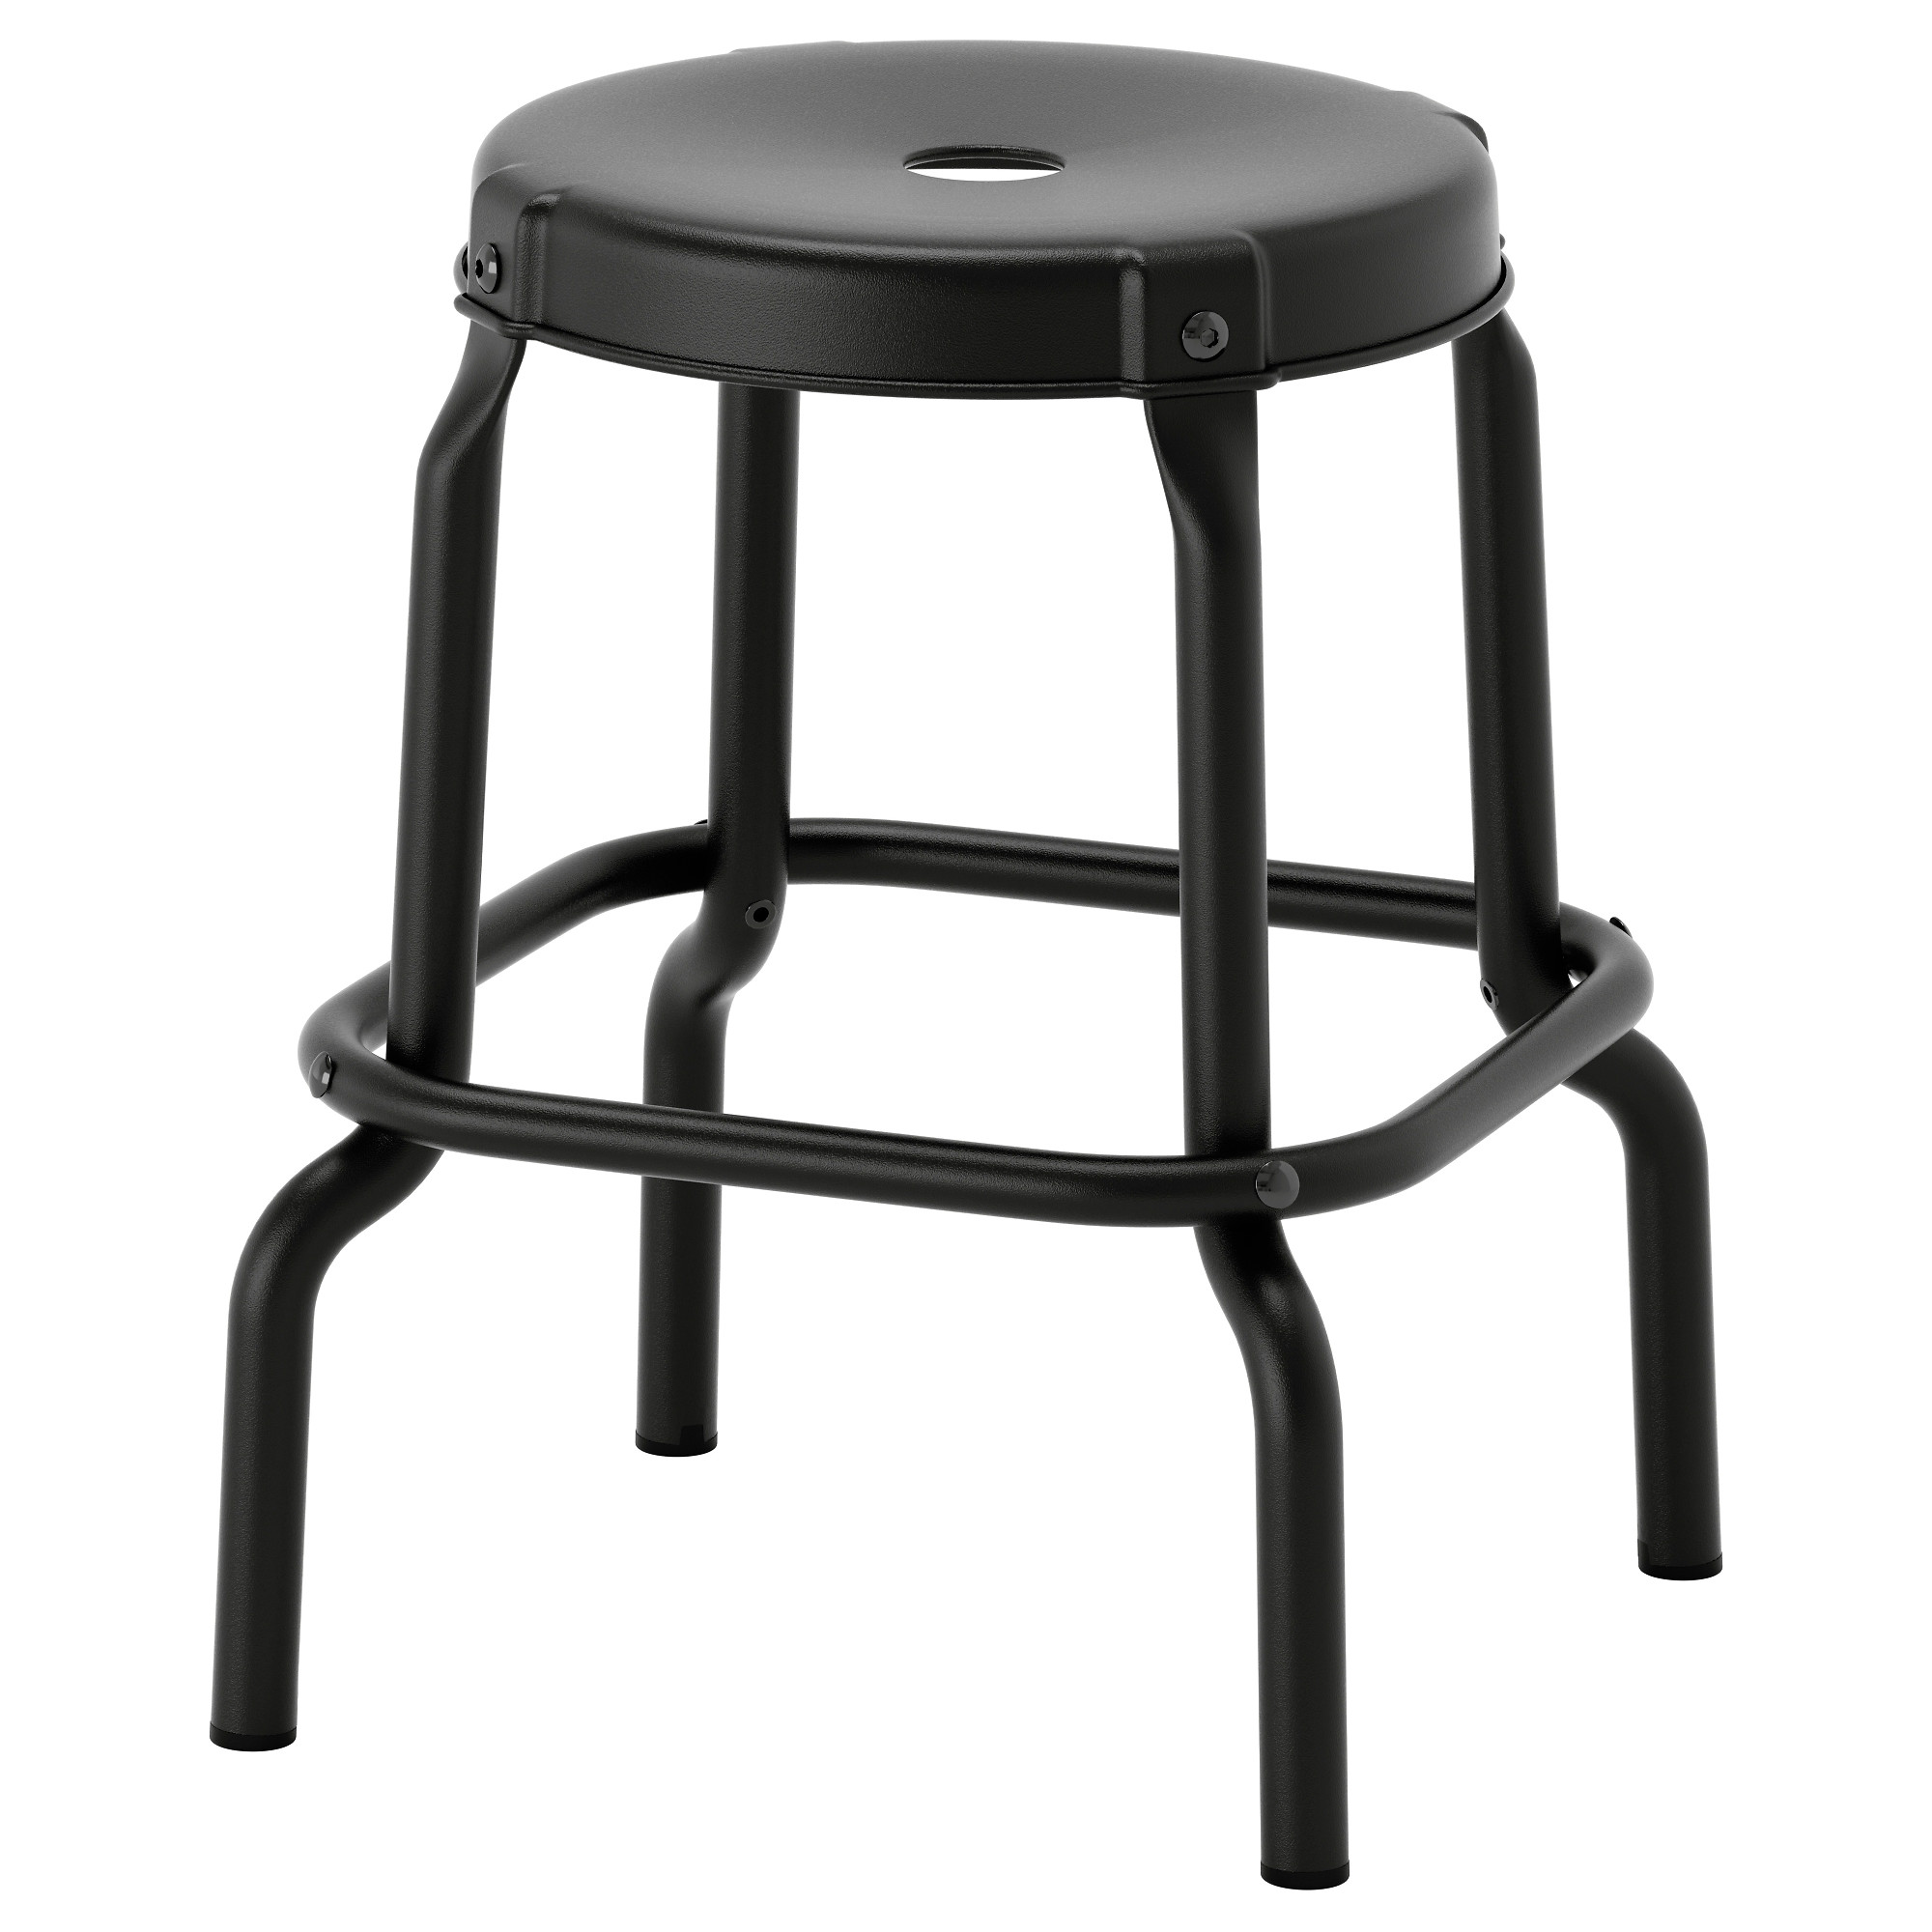 RSKOG stool, black Tested for: 220 lb Seat diameter: 11 3/4